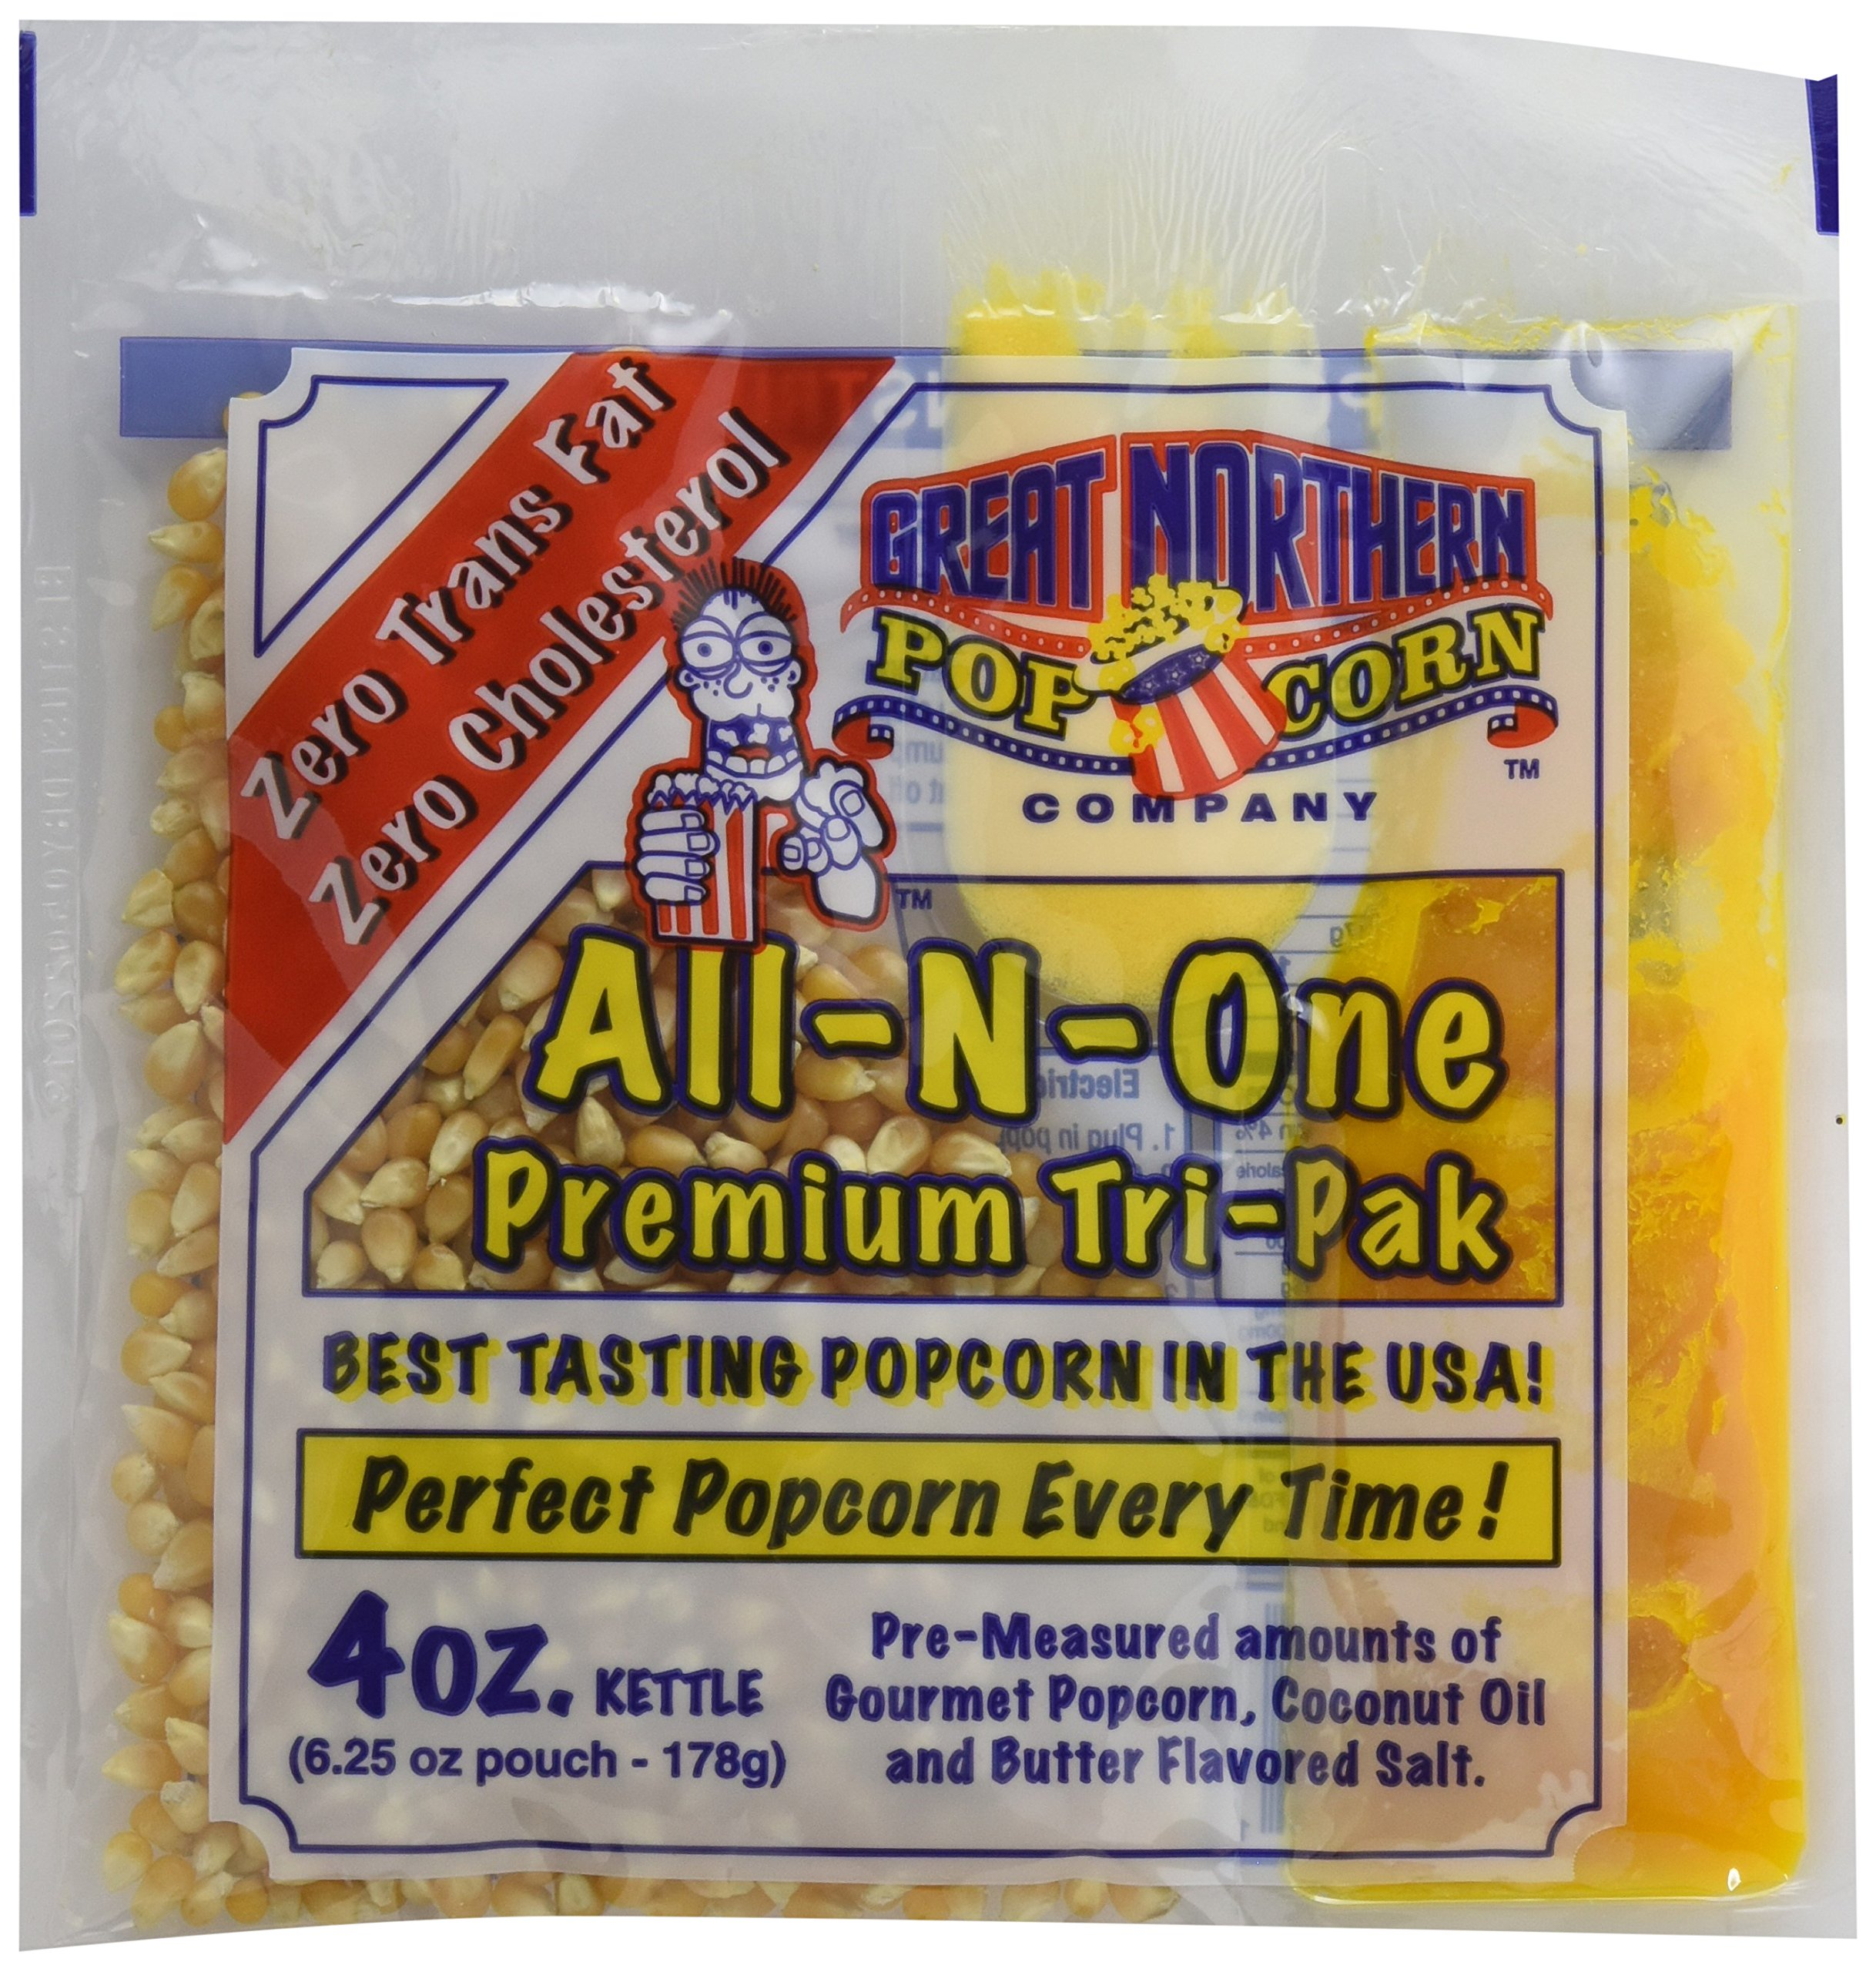 Great Northern Popcorn 4 Ounce Premium Popcorn Portion Packs, Case of 24 by Great Northern Popcorn Company